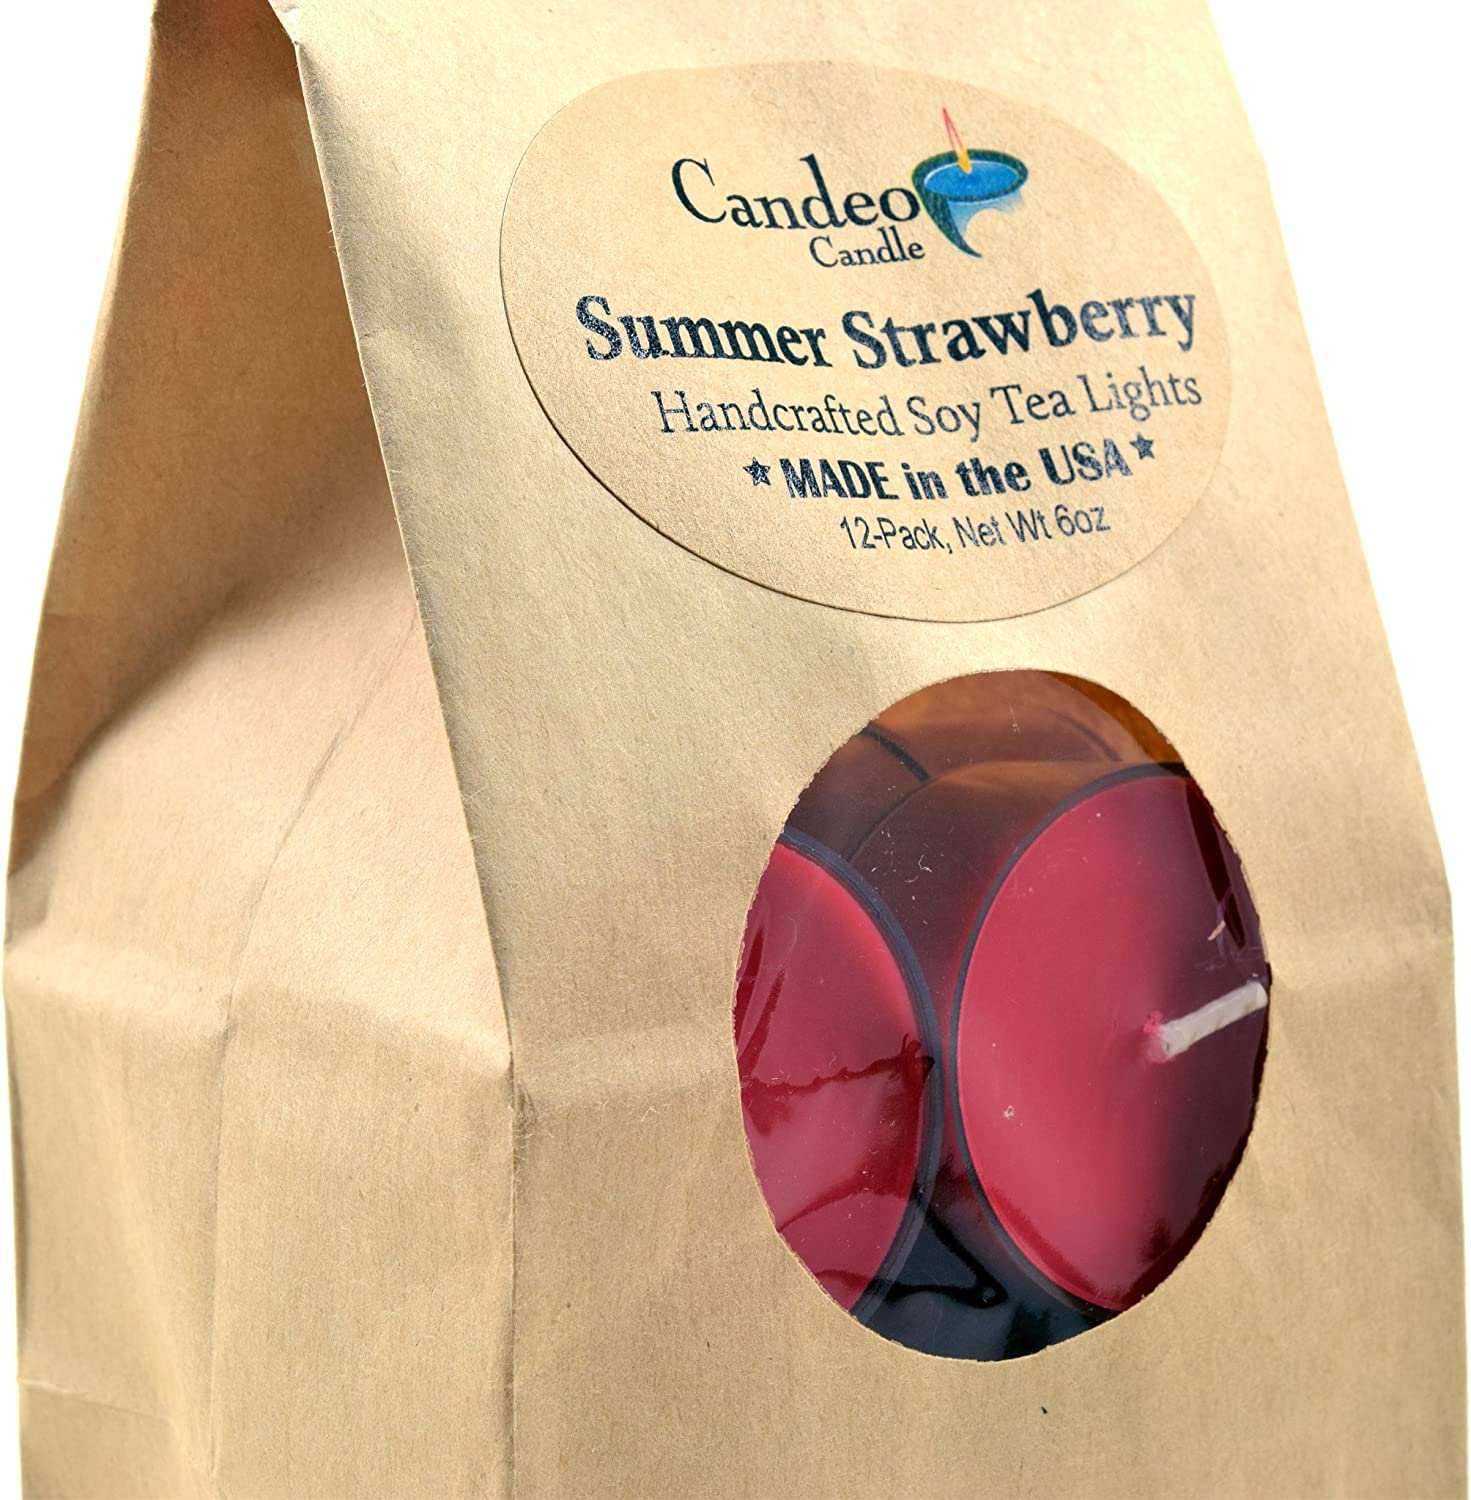 Summer Strawberry Scented Soy Tealights Cup Pack 12 Fresno Mall Cand supreme Clear